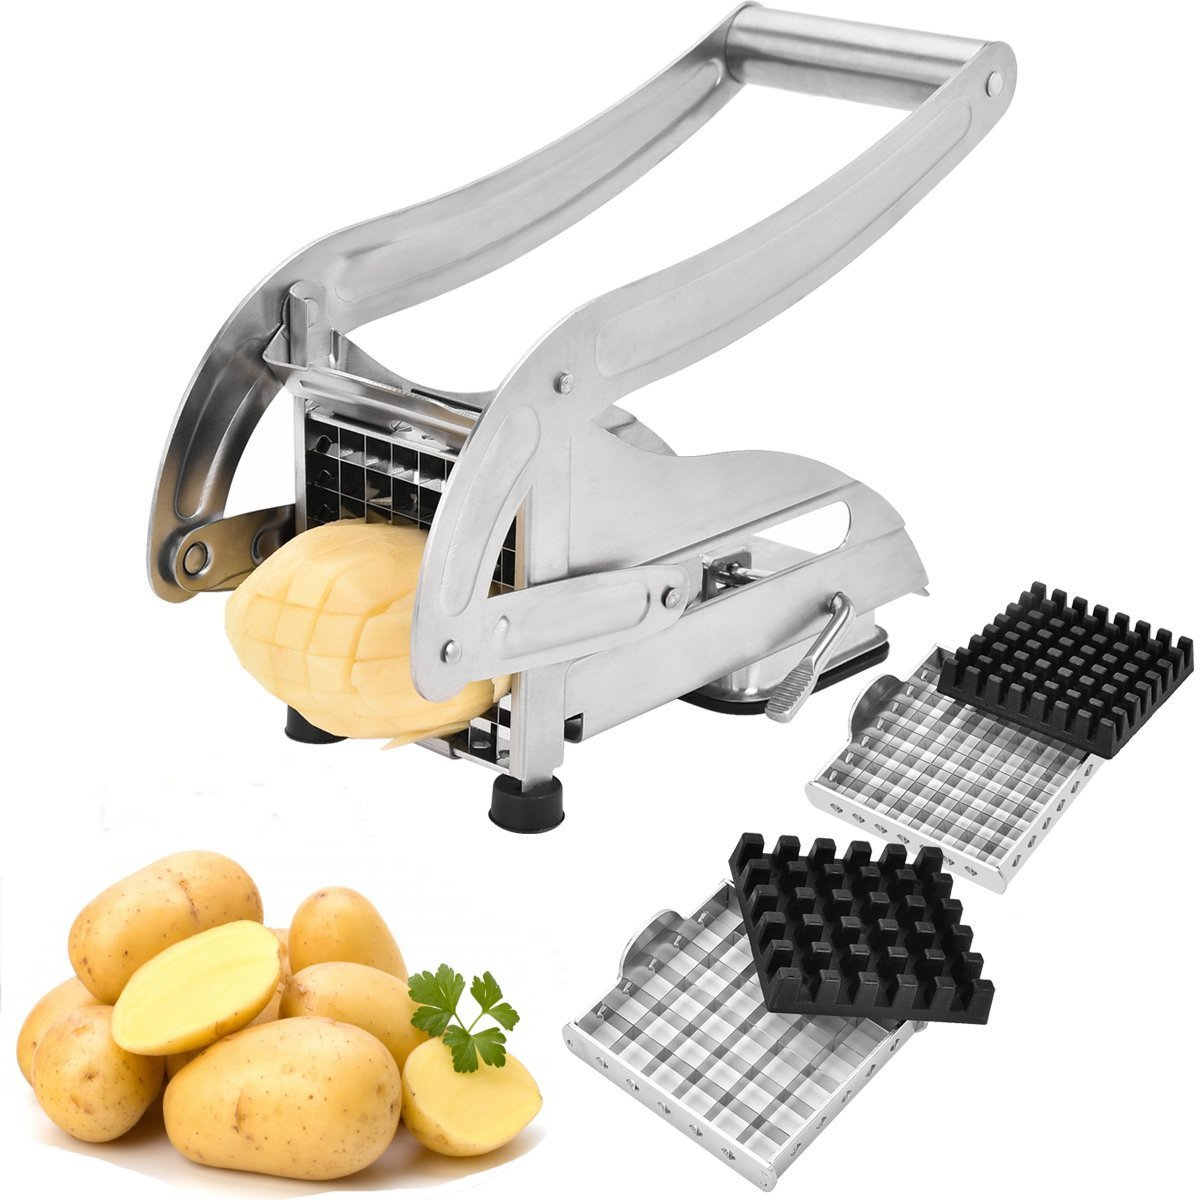 Coolmade French Fry Cutter, Stainless Steel Potato Slicer Veggies Chopper and Dicer Potato Fries Maker with 2 Size Interchangeable Blades and Strong-Hold Suction Pads